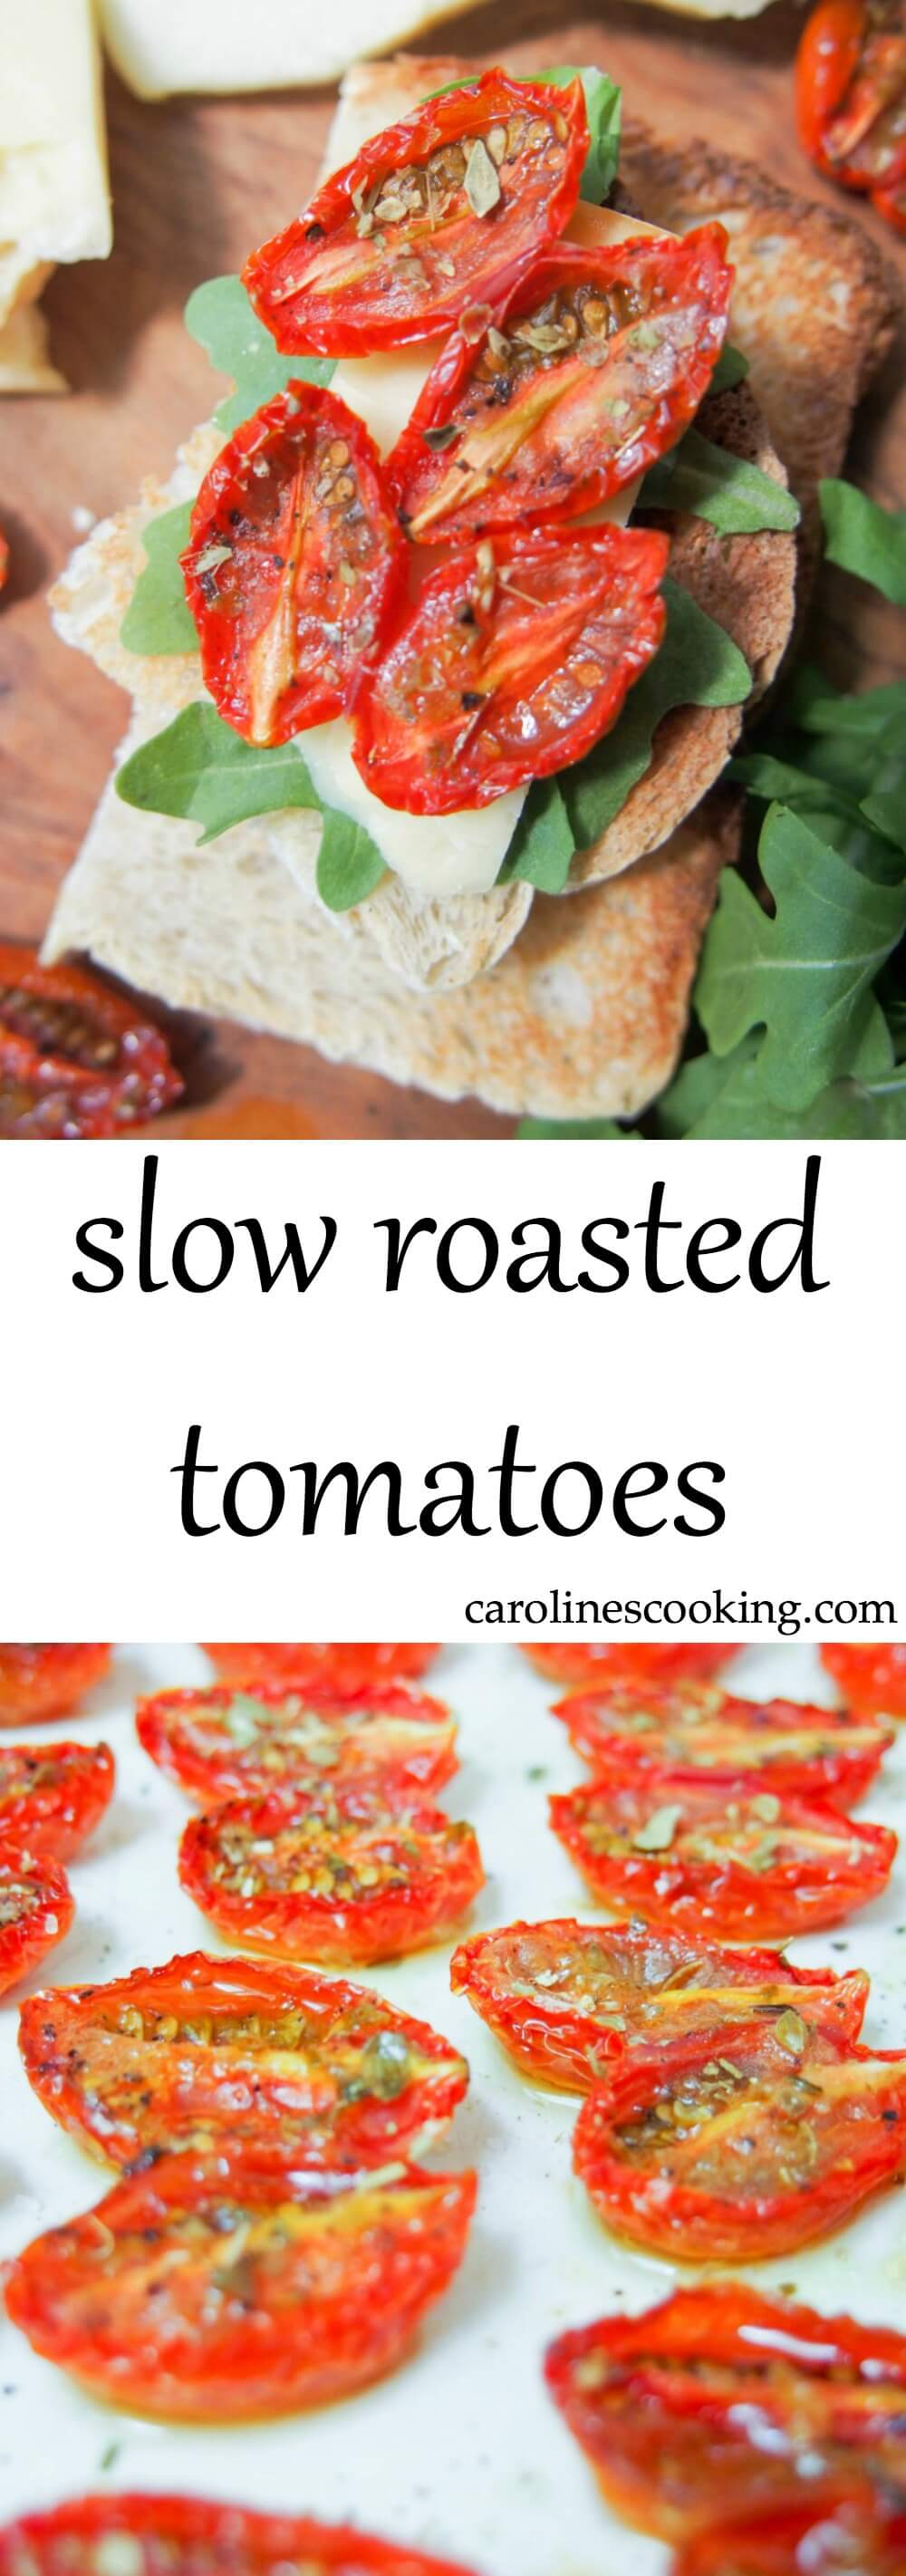 slow roasted tomatoes - Intensely tomato-y without being overpowering, gently dried but still juicy inside, these slow roasted tomatoes make such a delicious little bite. Great to snack on, with cheese and bread or in pasta.